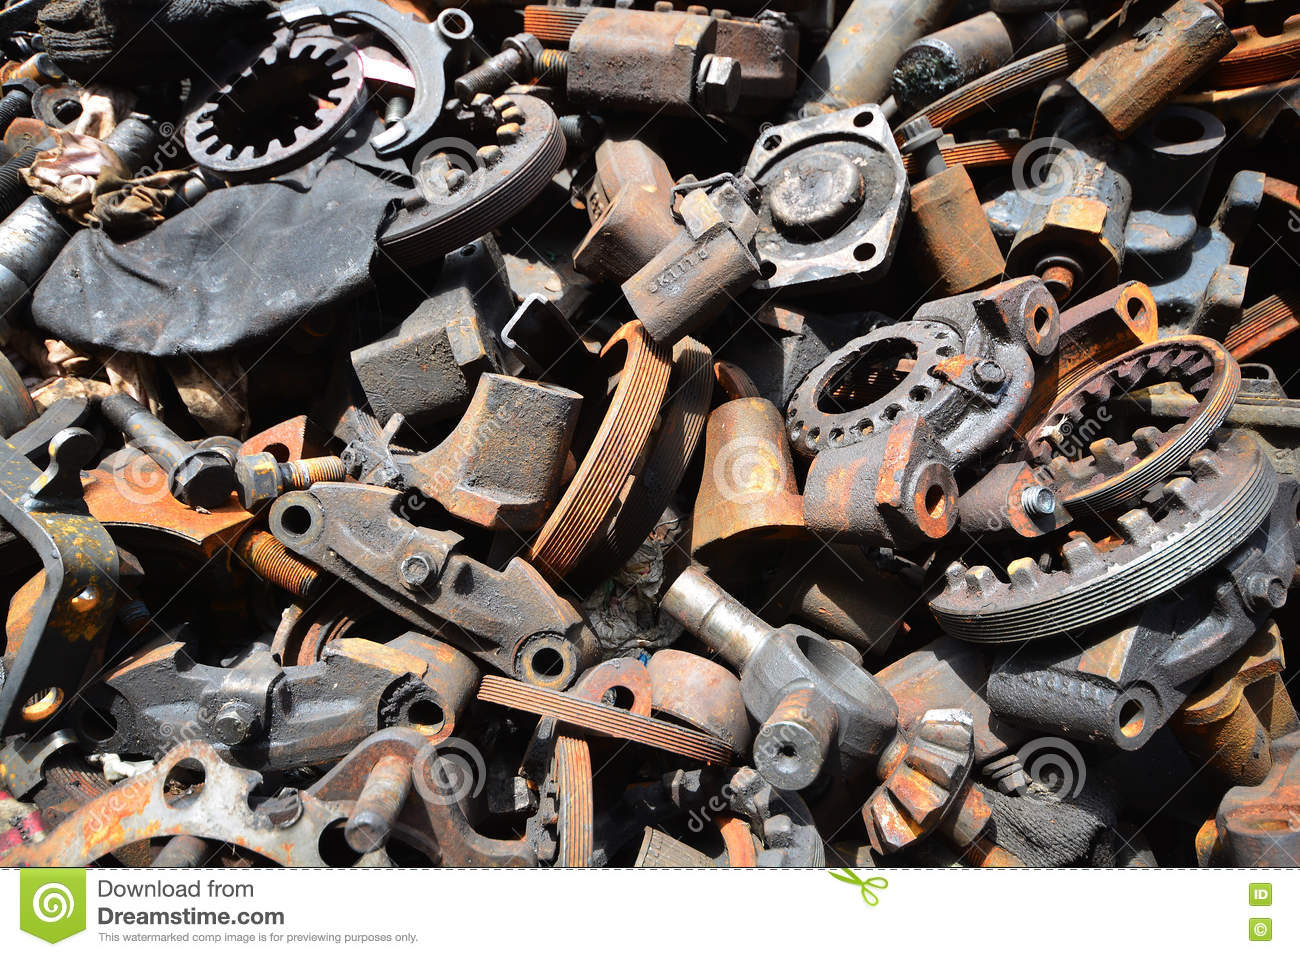 Where To Buy Junk Car Parts